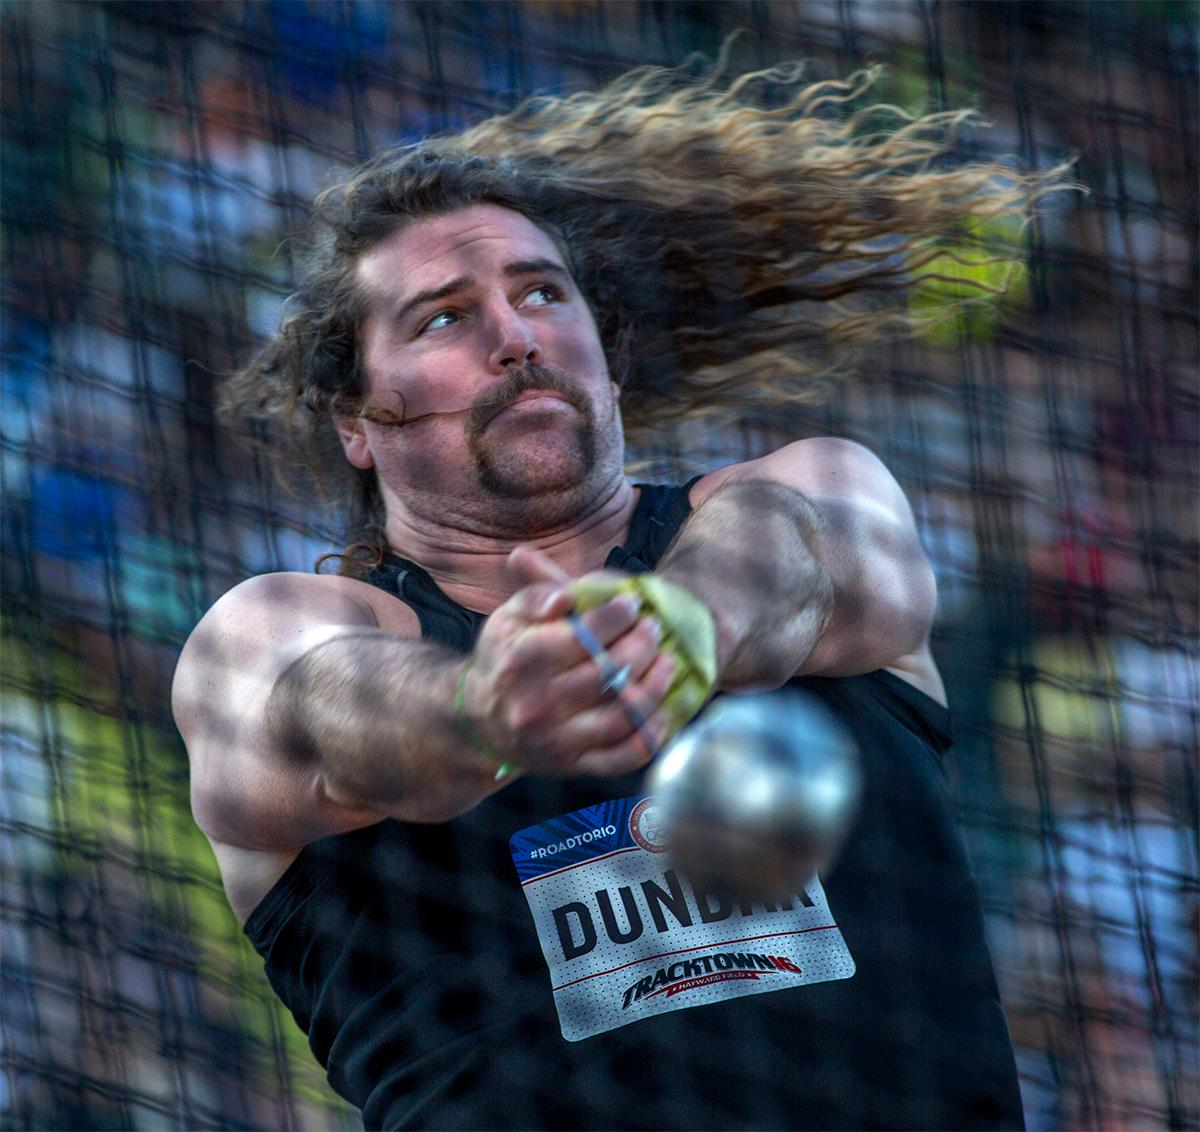 Colin Dunbar's locks flew along with the hammer on Wednesday, July 6. Photo by August Frank, Oregon News Lab